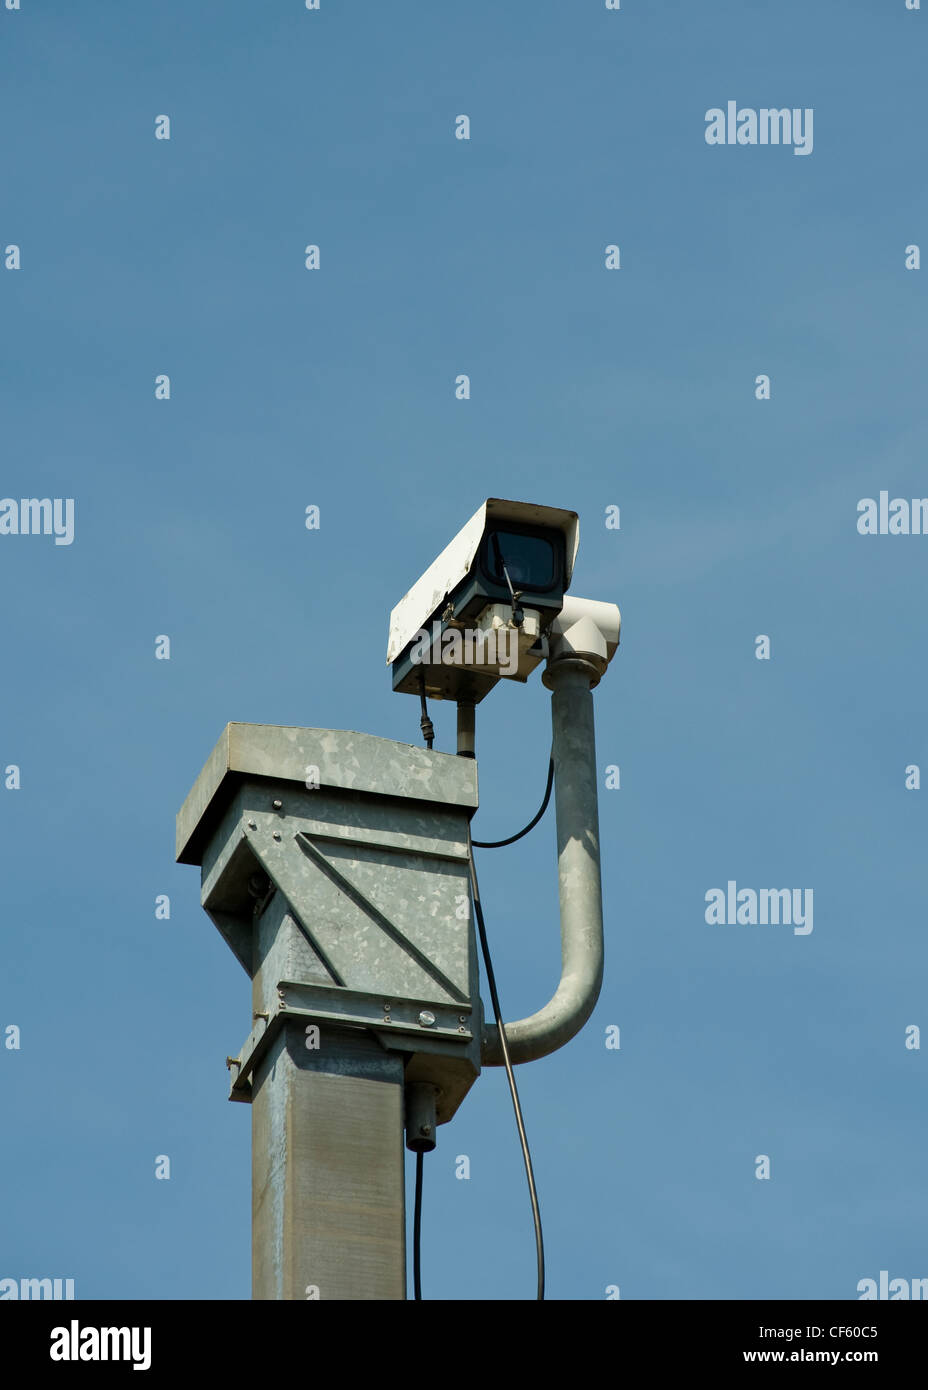 A CCTV (closed circuit television) camera on top of a tall pole surveying the traffic passing along the M25 in Essex. - Stock Image